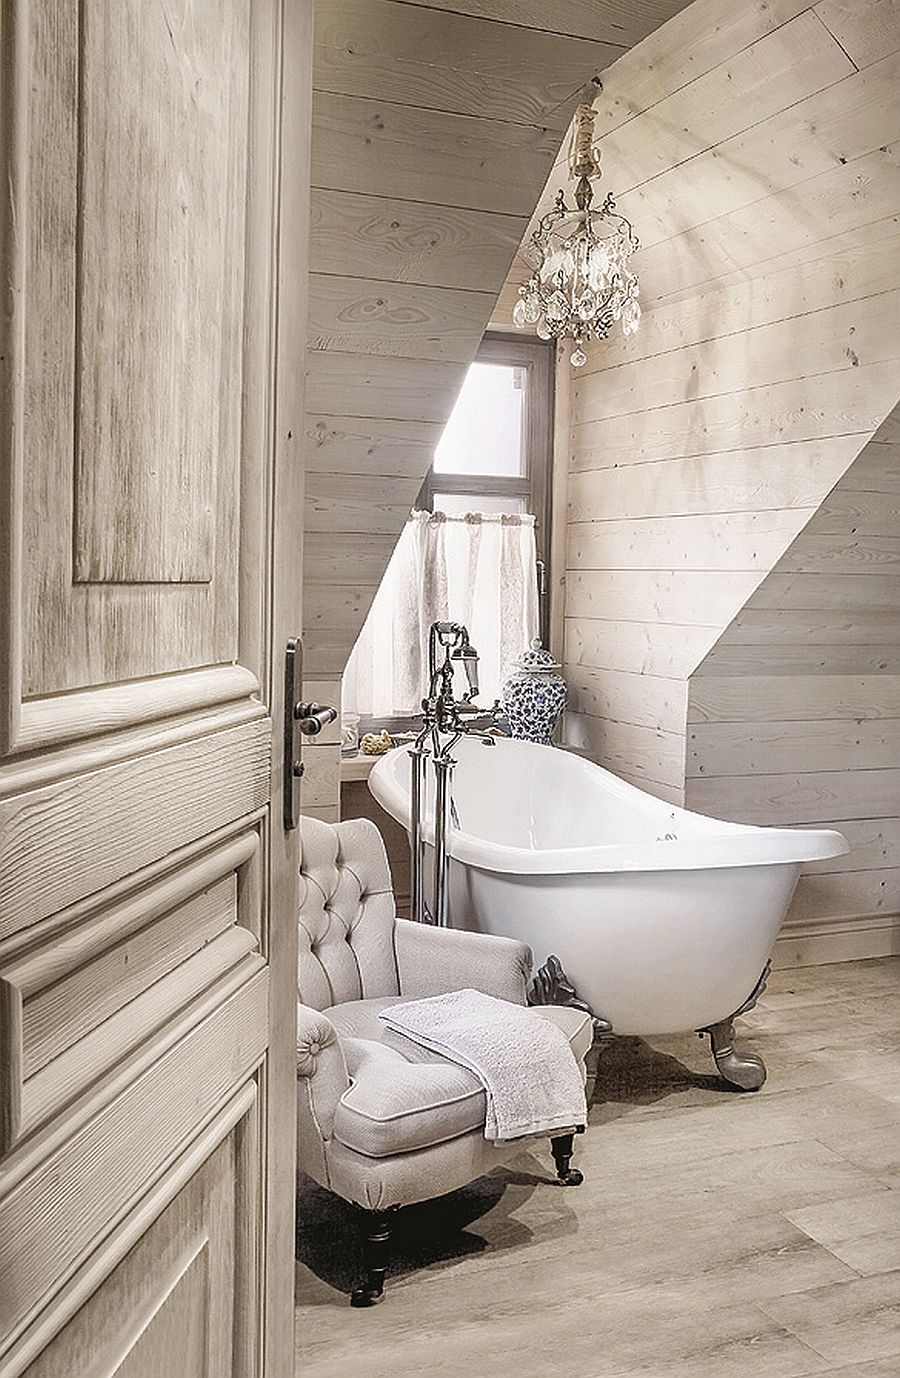 In the bathroom, a gorgeous clawfoot tub is placed in a window nook, complemented by a crystal chandelier